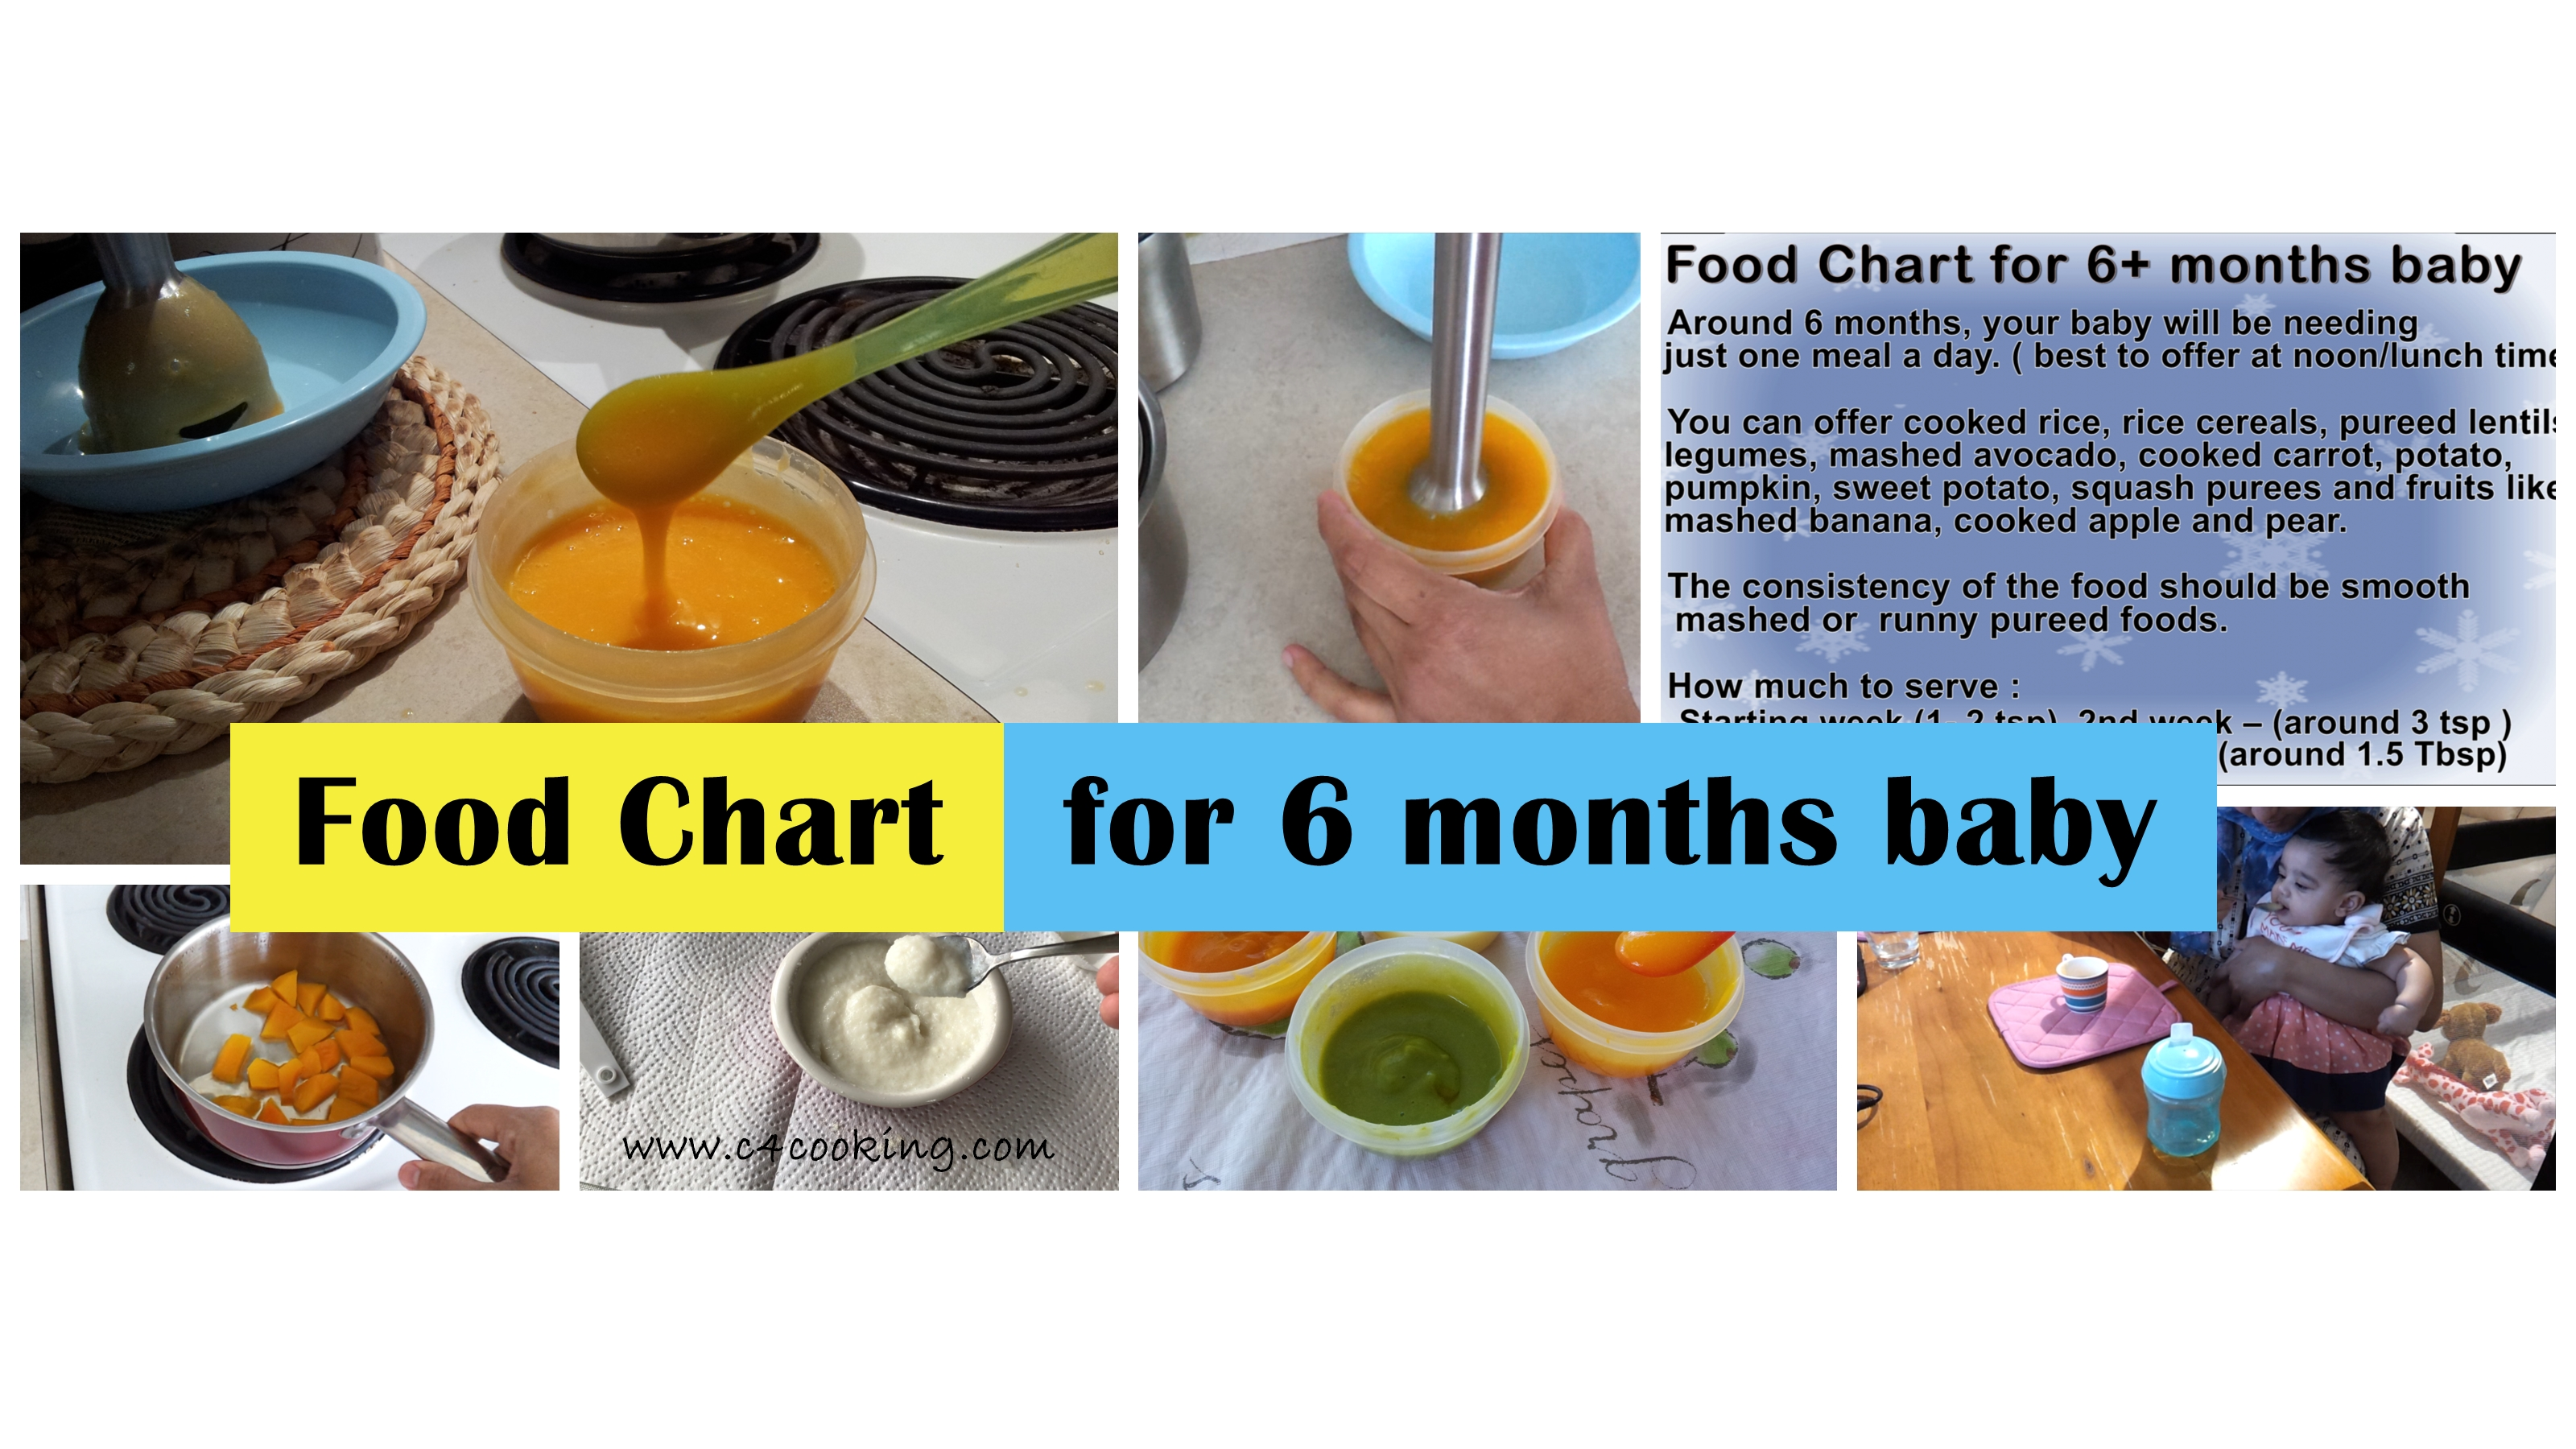 foodchart 6months baby